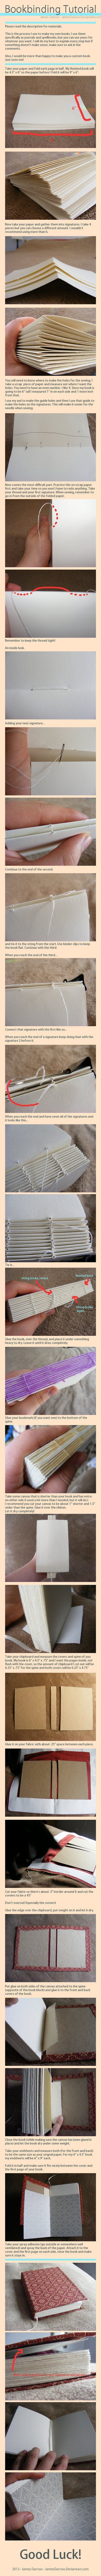 Book binding tutorial. I might have to start making handmade journals...